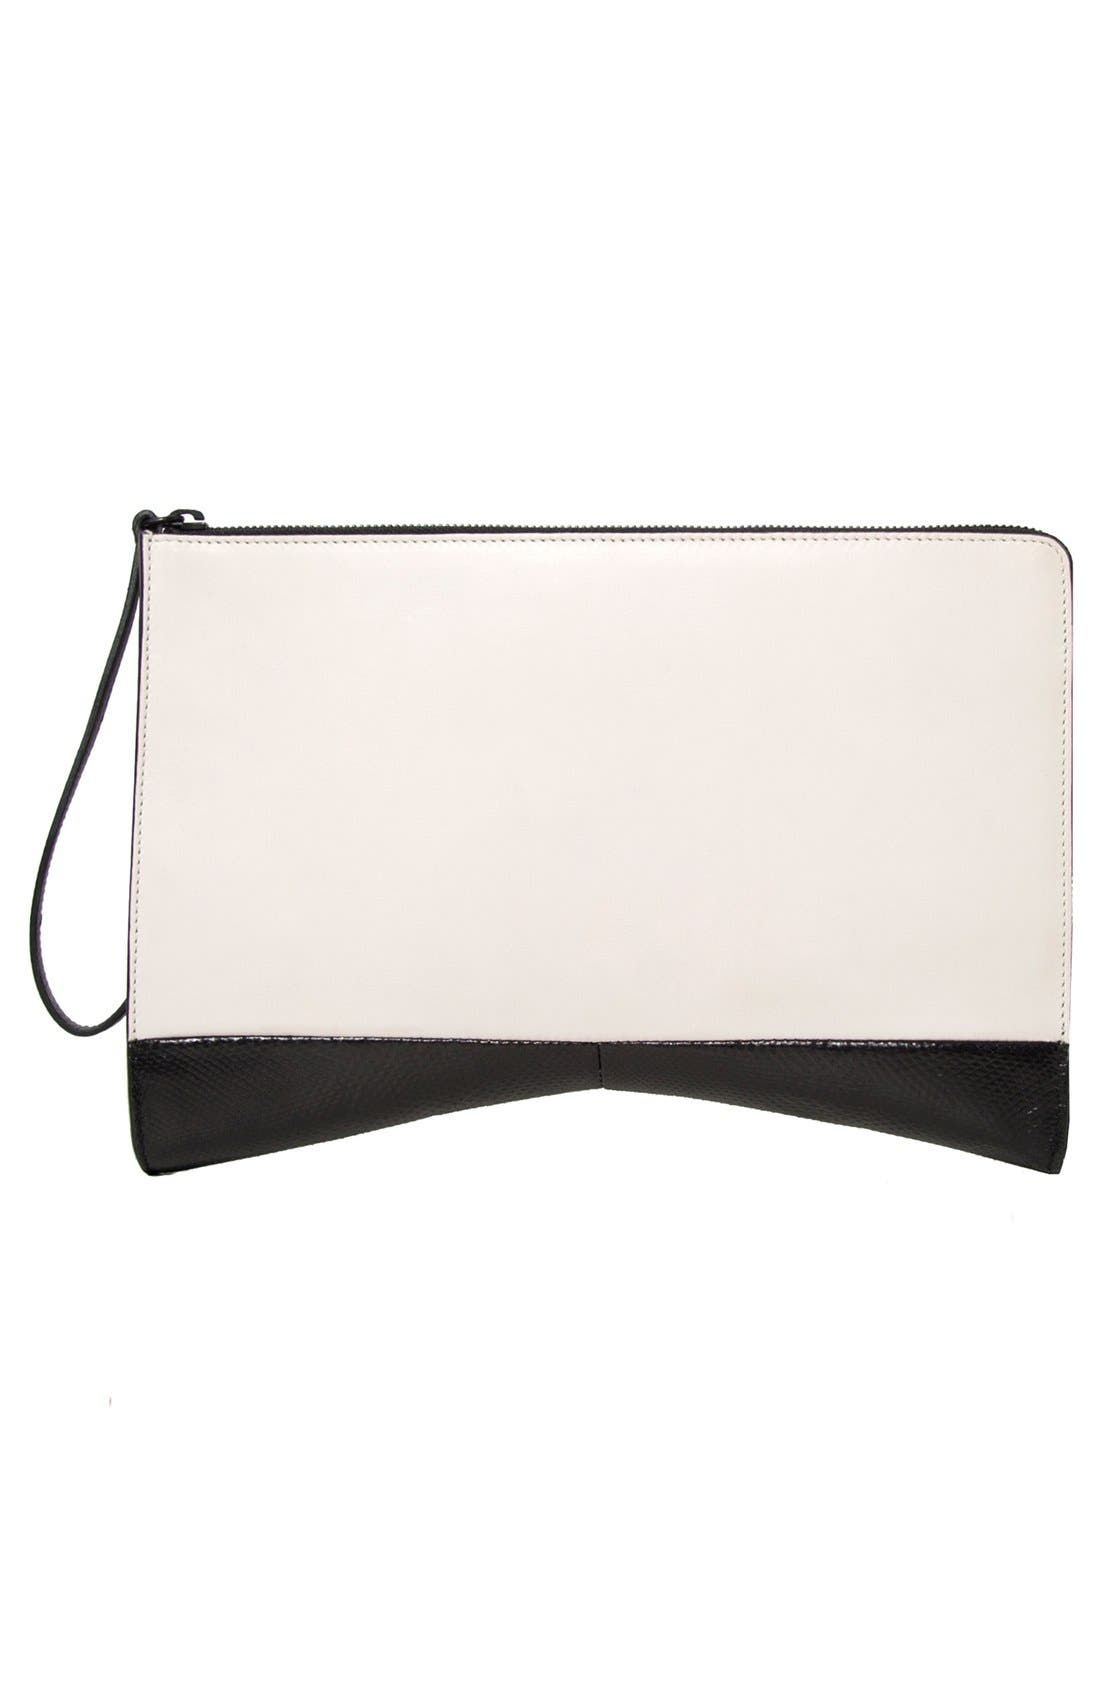 Alternate Image 2  - Narciso Rodriguez 'Boomerang' Genuine Python & Leather Clutch